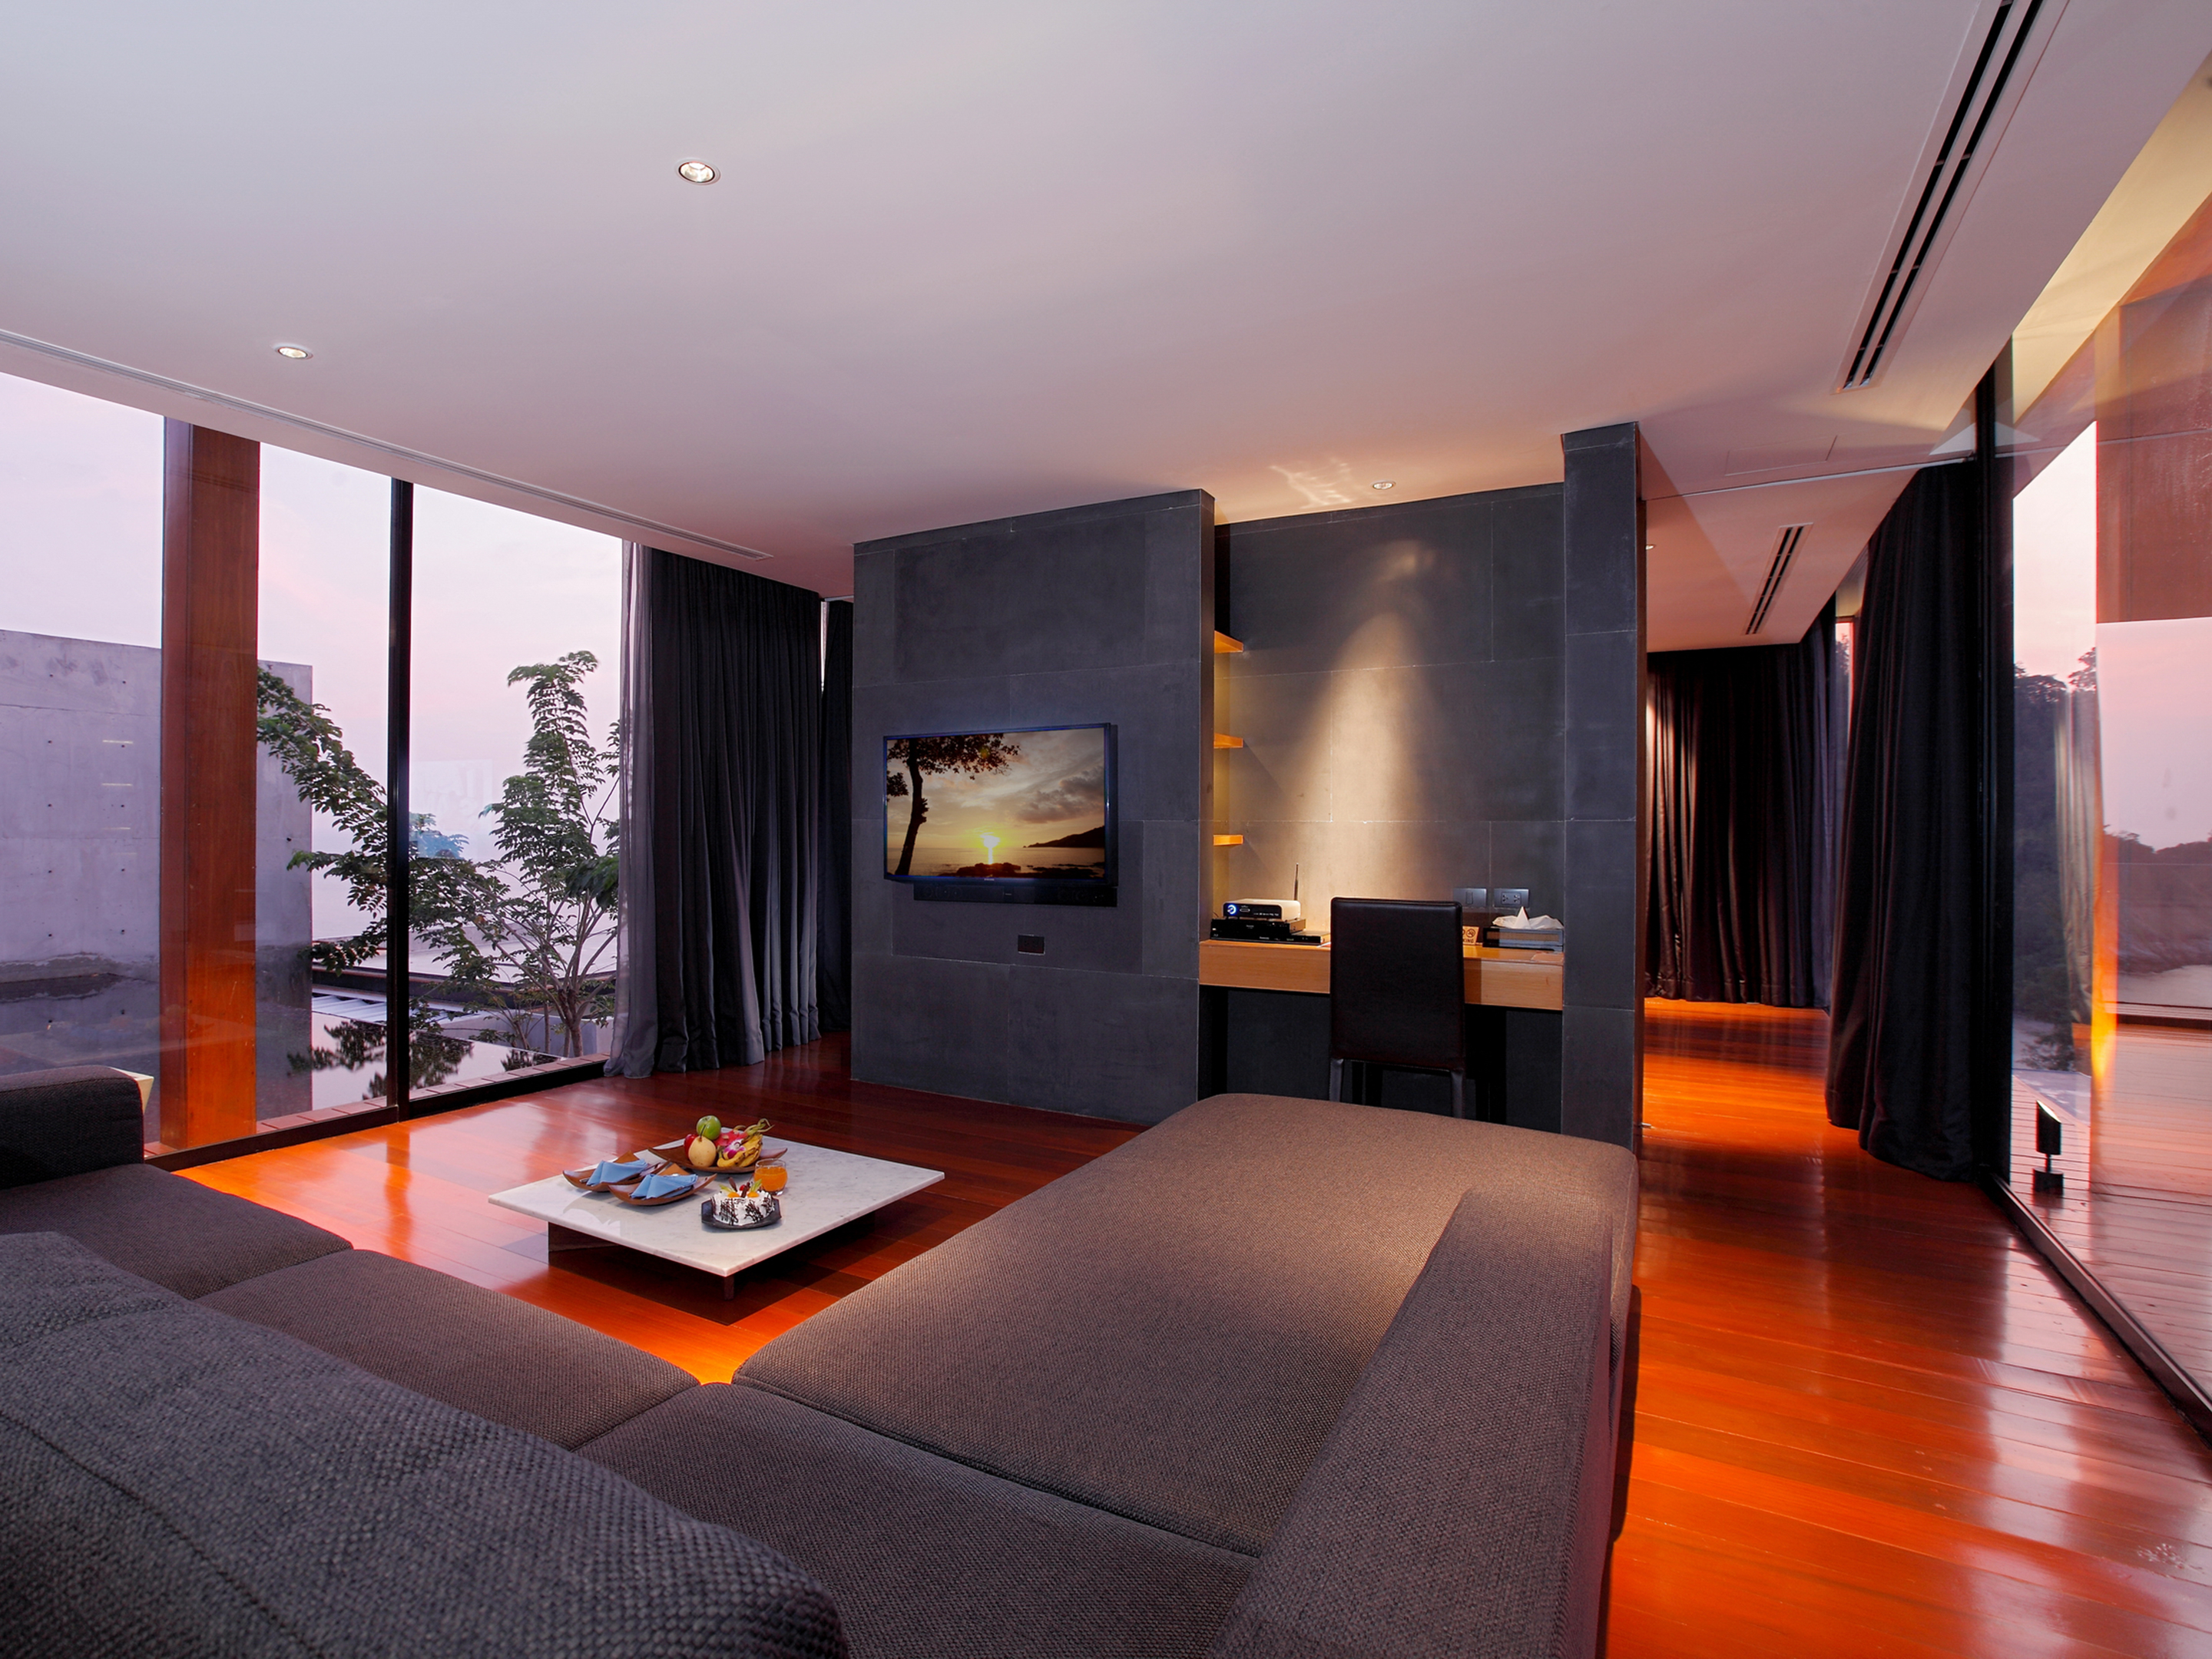 Rooms suites at the naka in phuket thailand design for Design hotel phuket